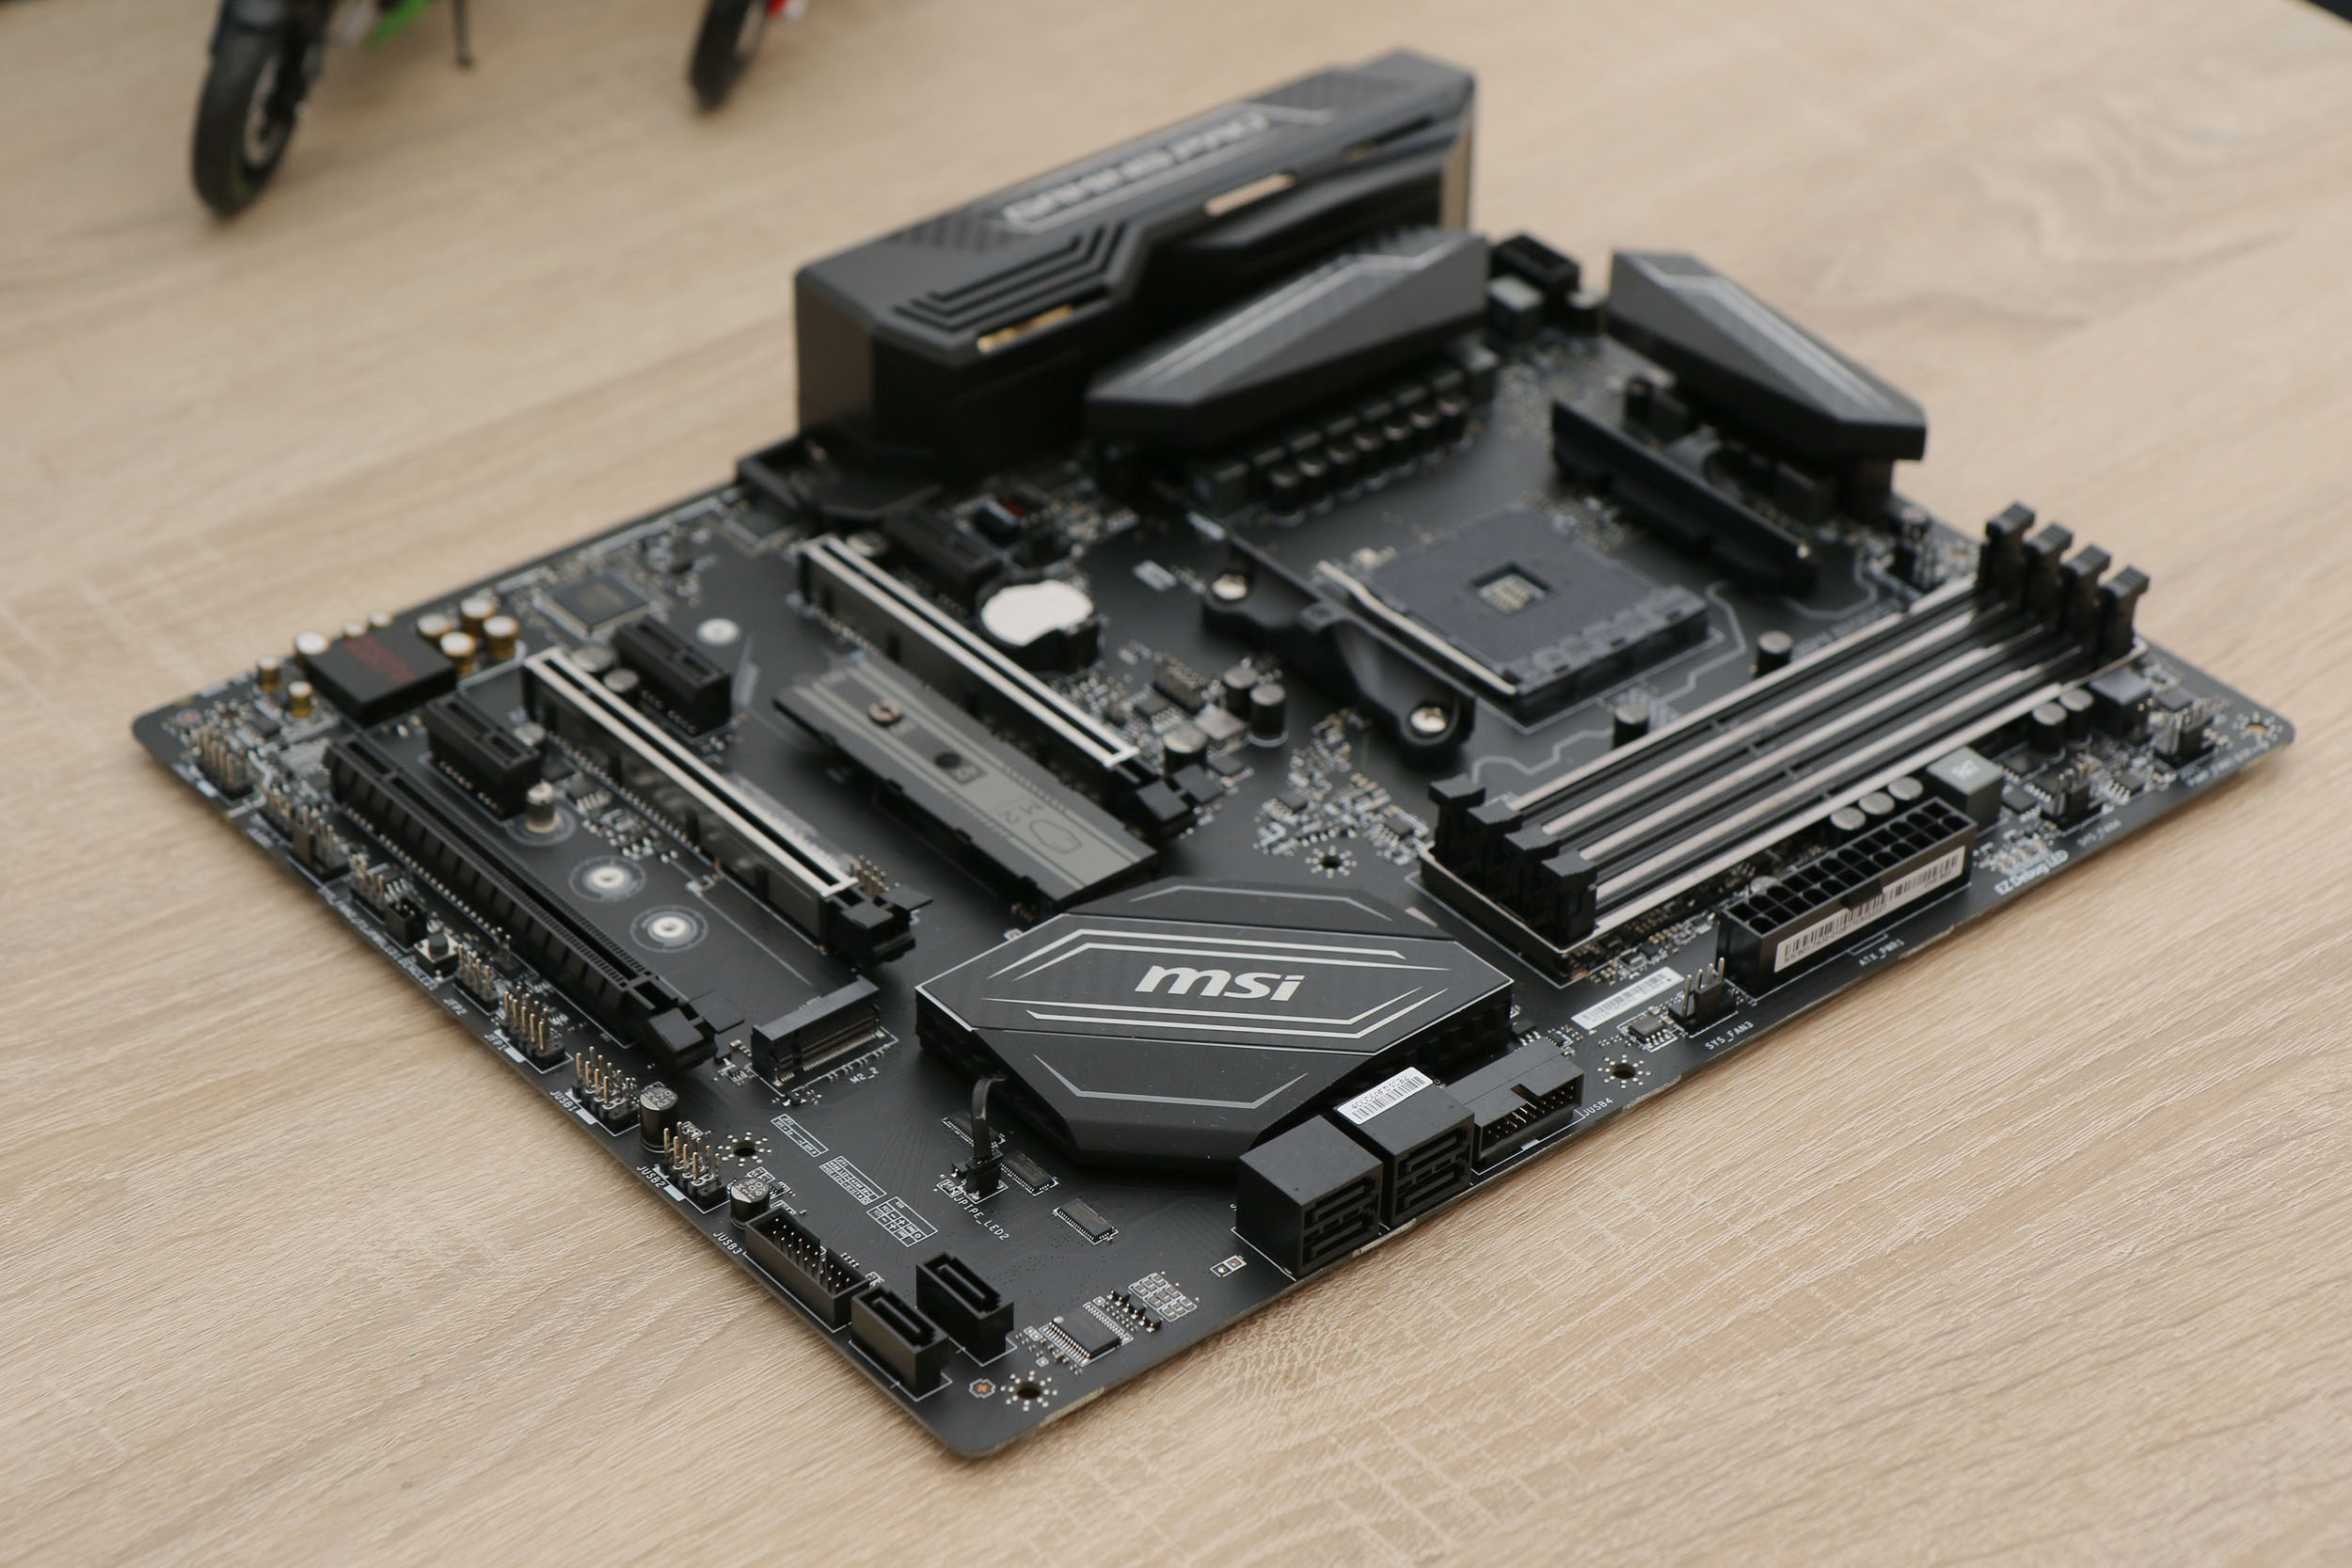 msi x370 gaming pro carbon 009 s